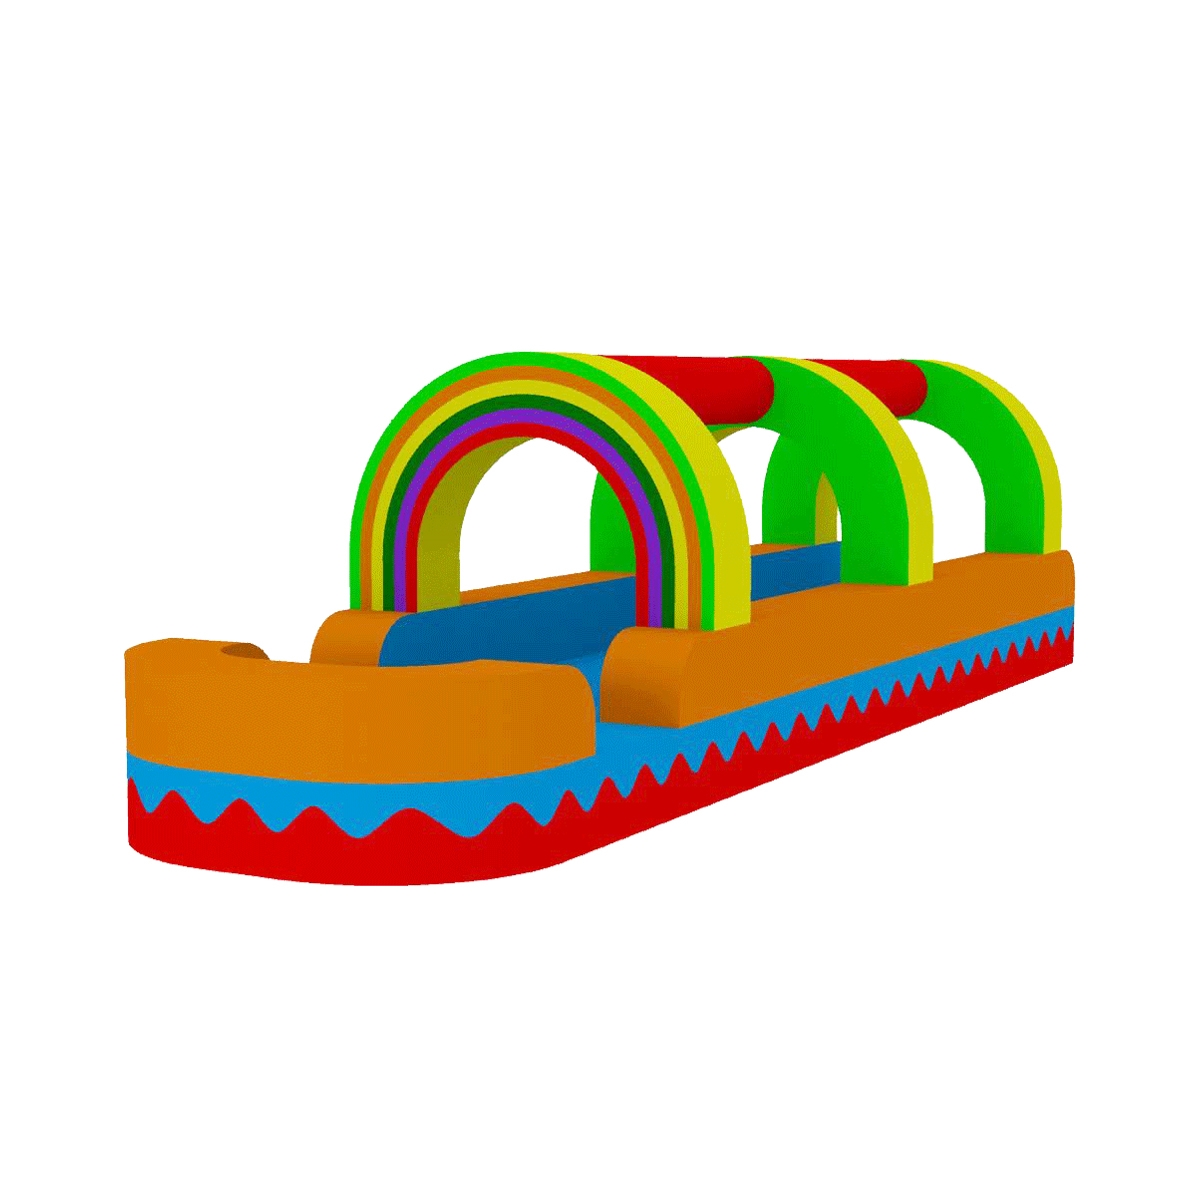 Water slide rainbow bouncer jumper bounce house castle water clipart